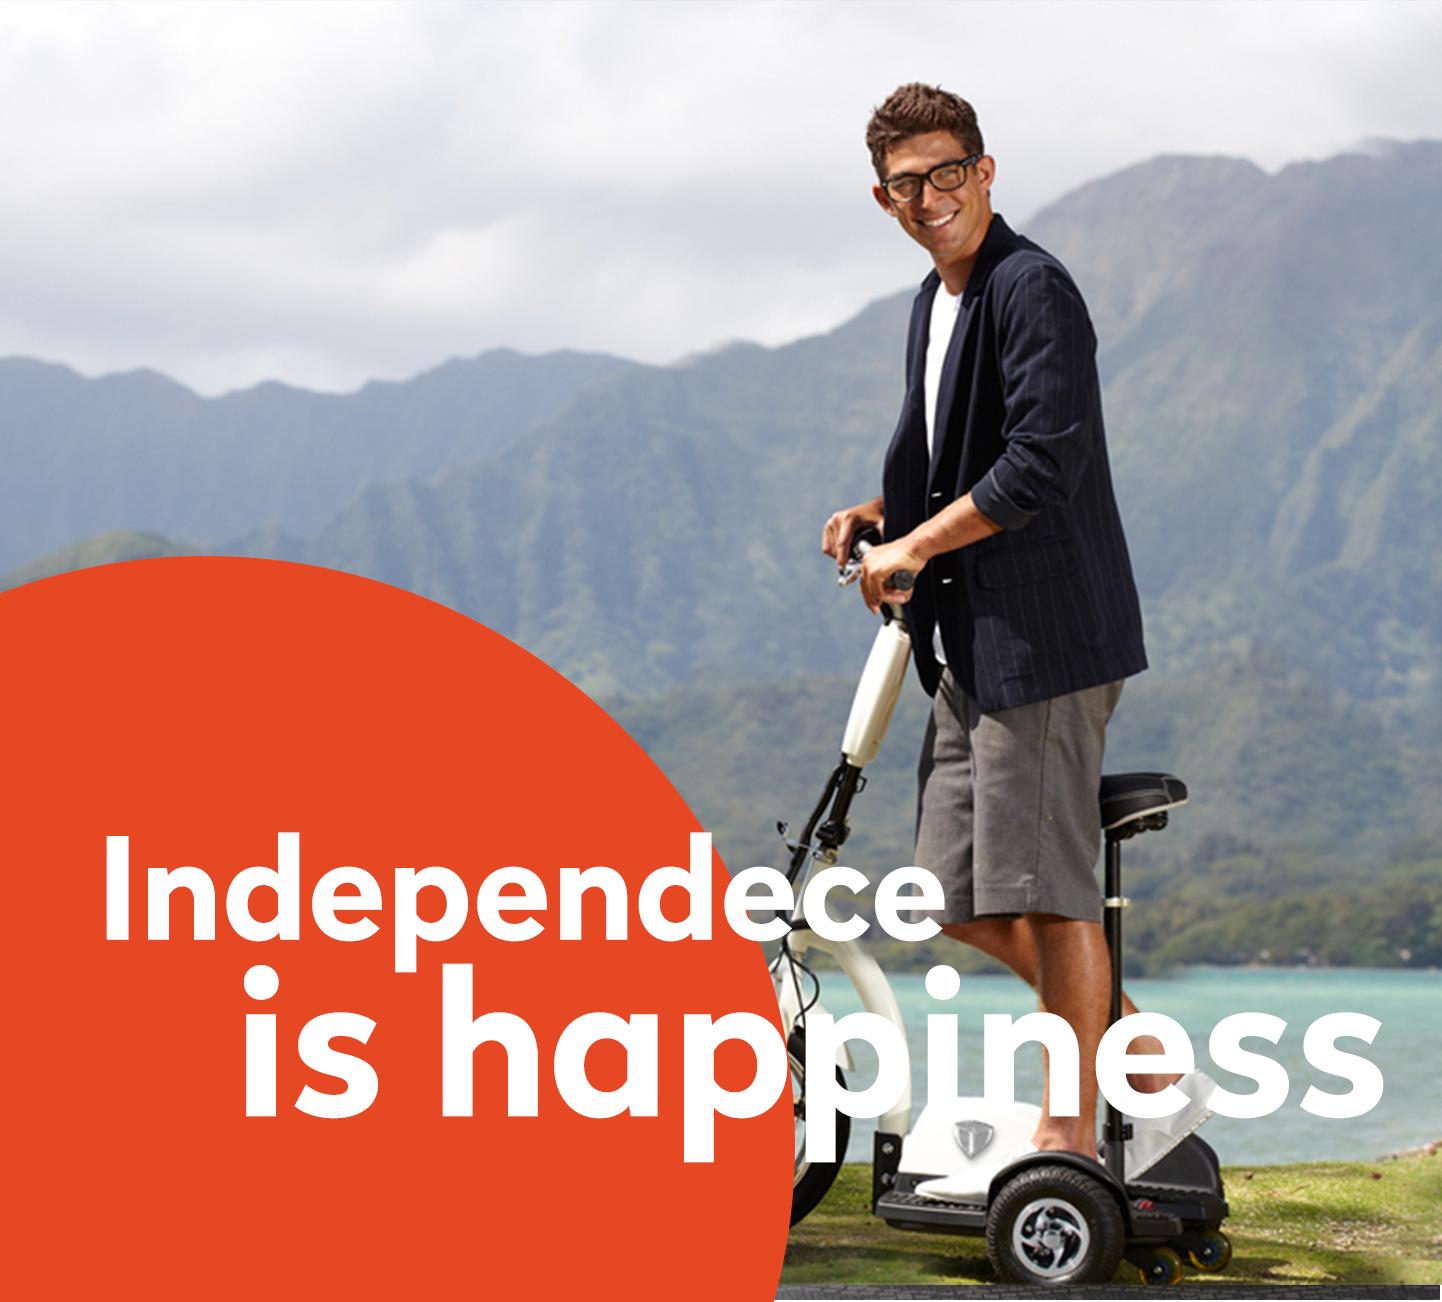 Independece is happiness